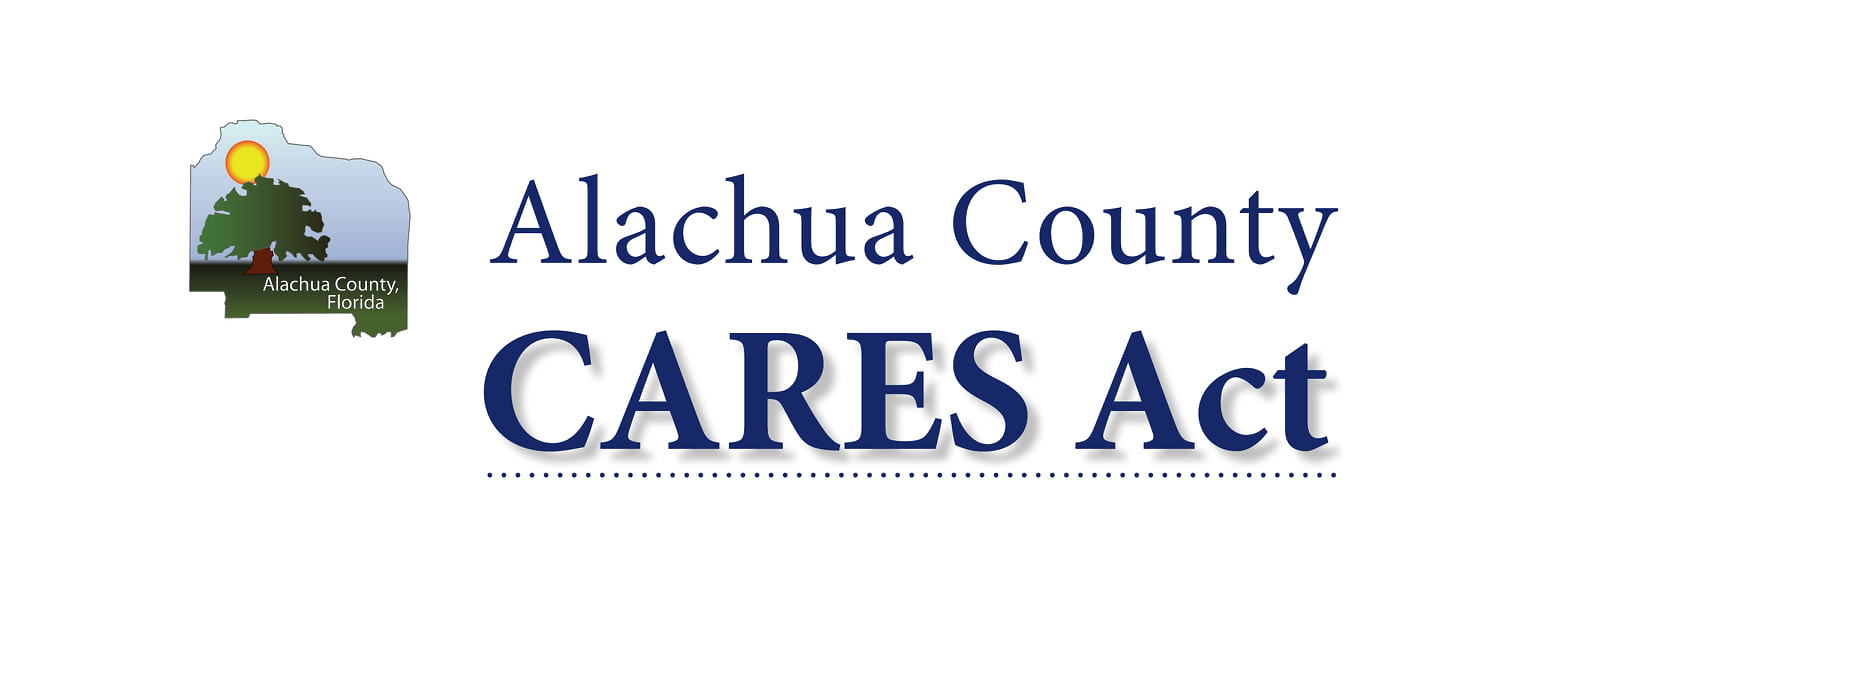 Alachua County CARES Act